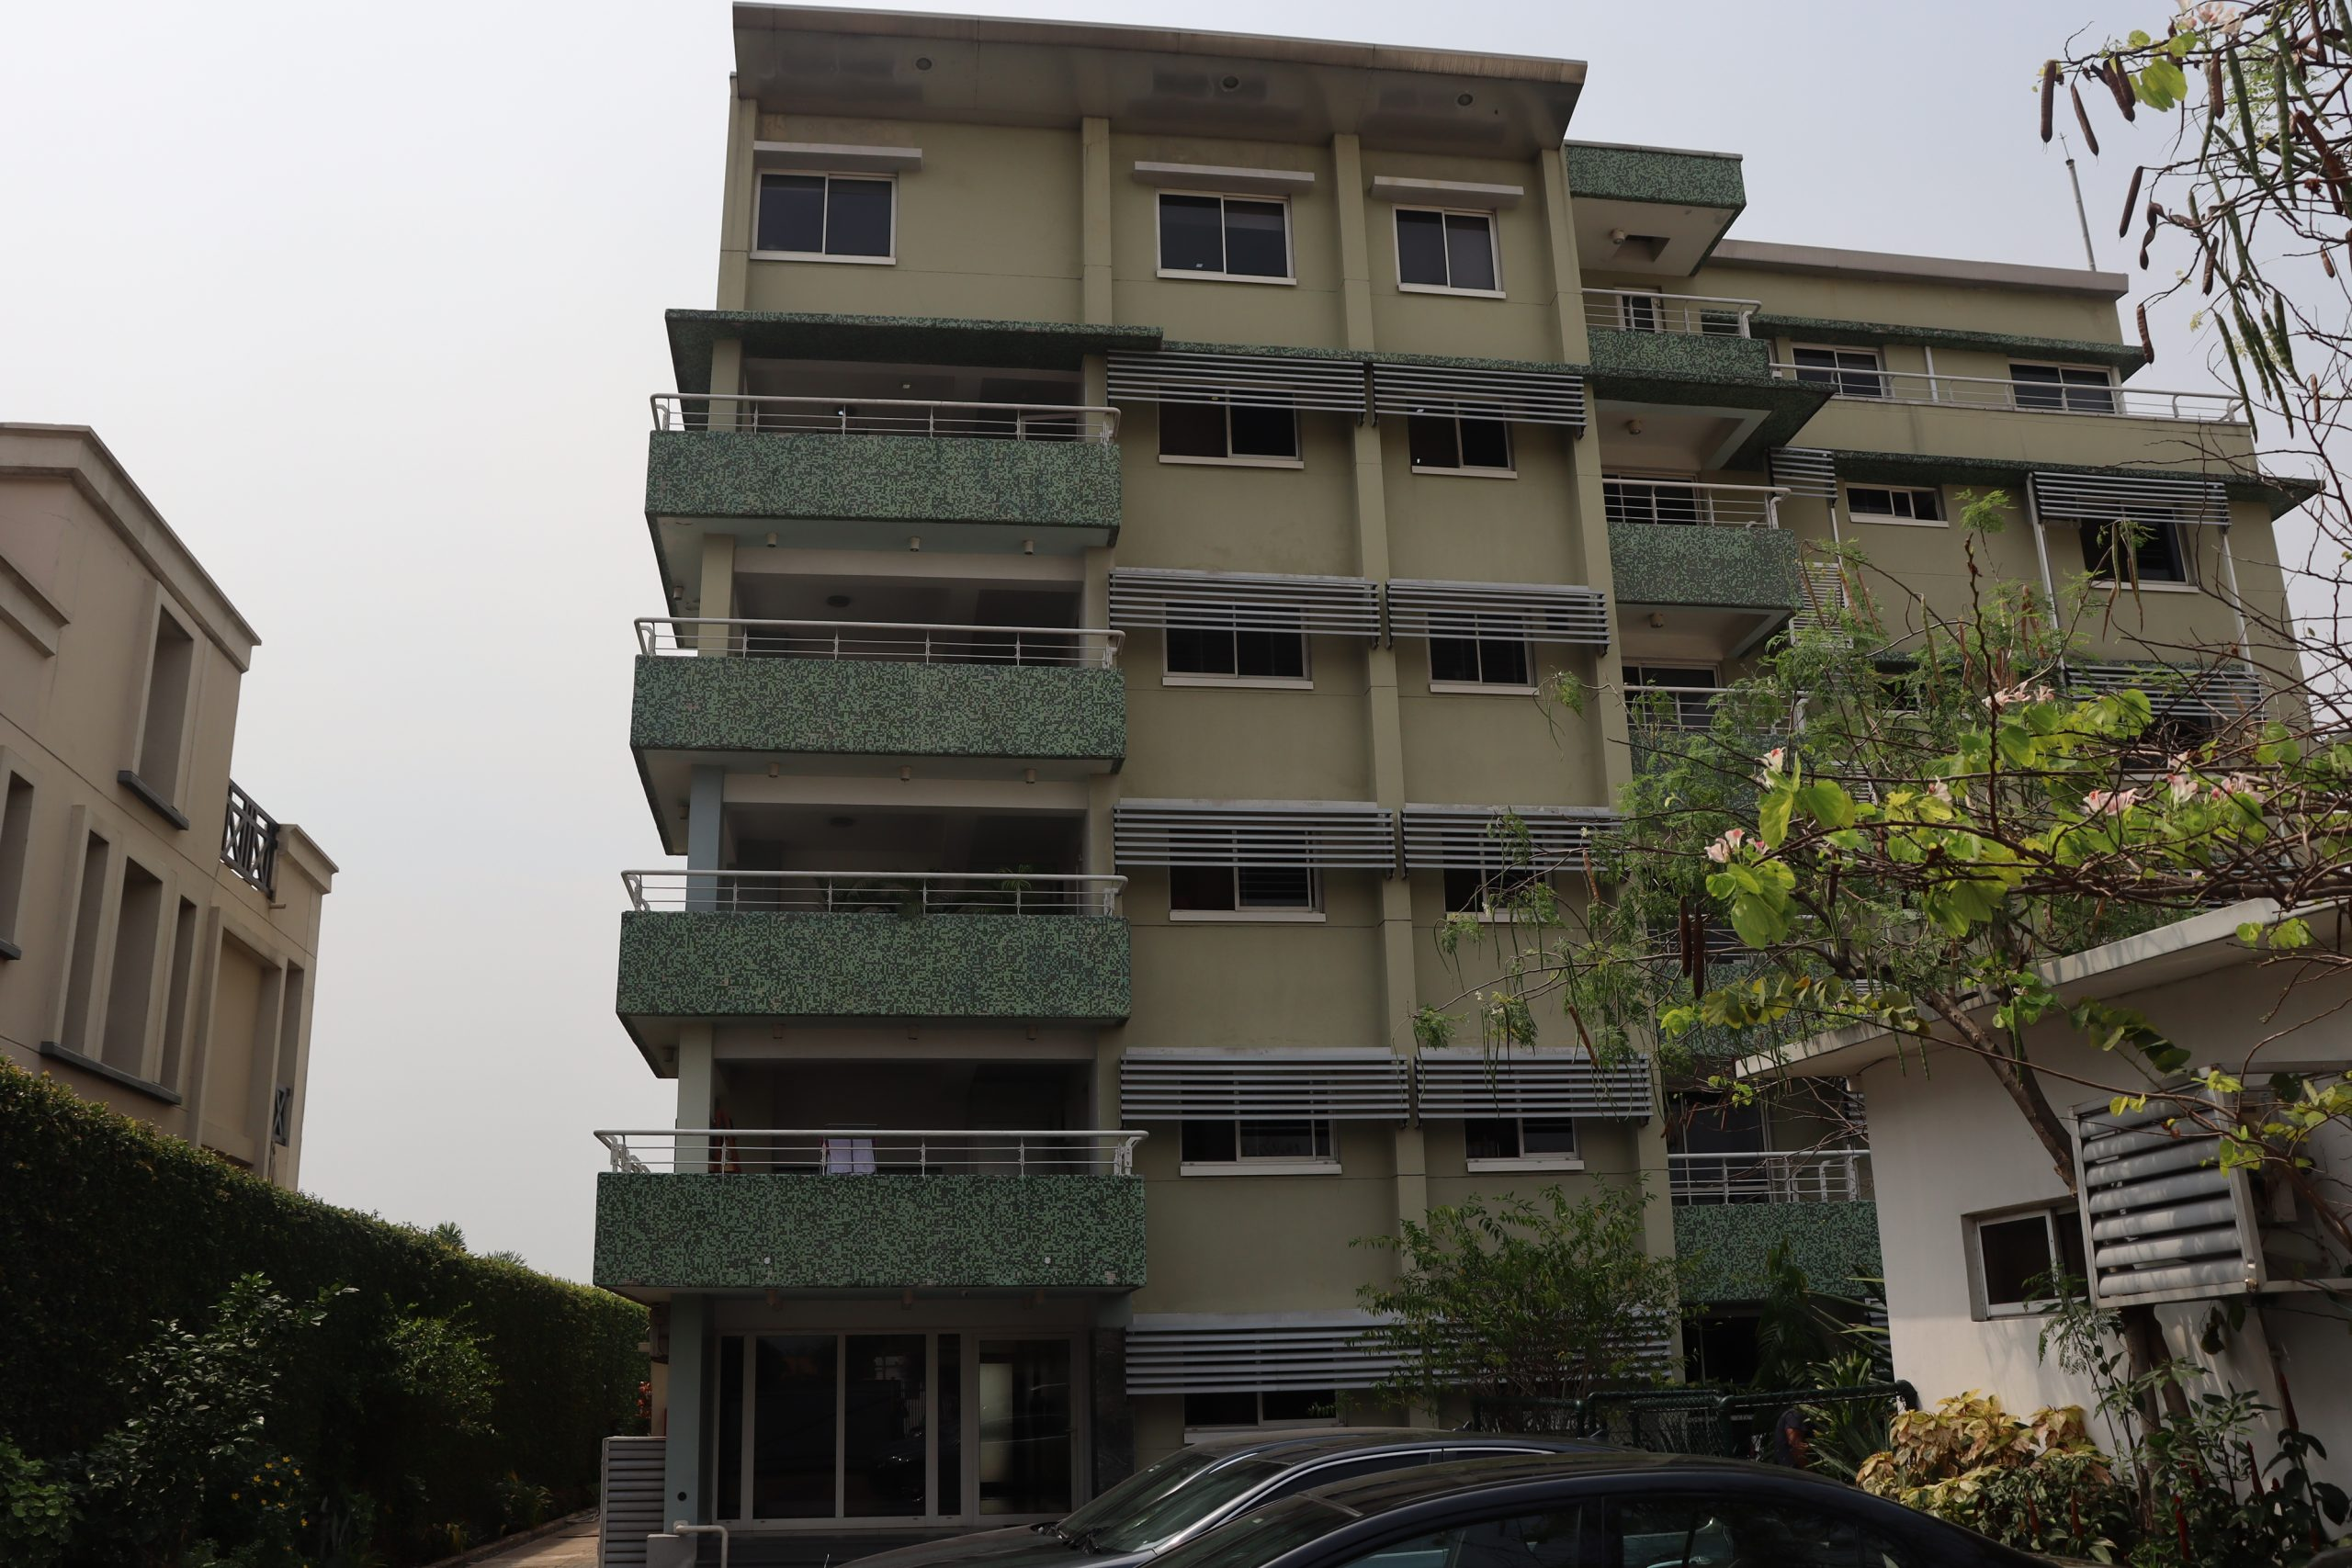 3 Bedroom Luxury Apartment in Lekki Phase 1